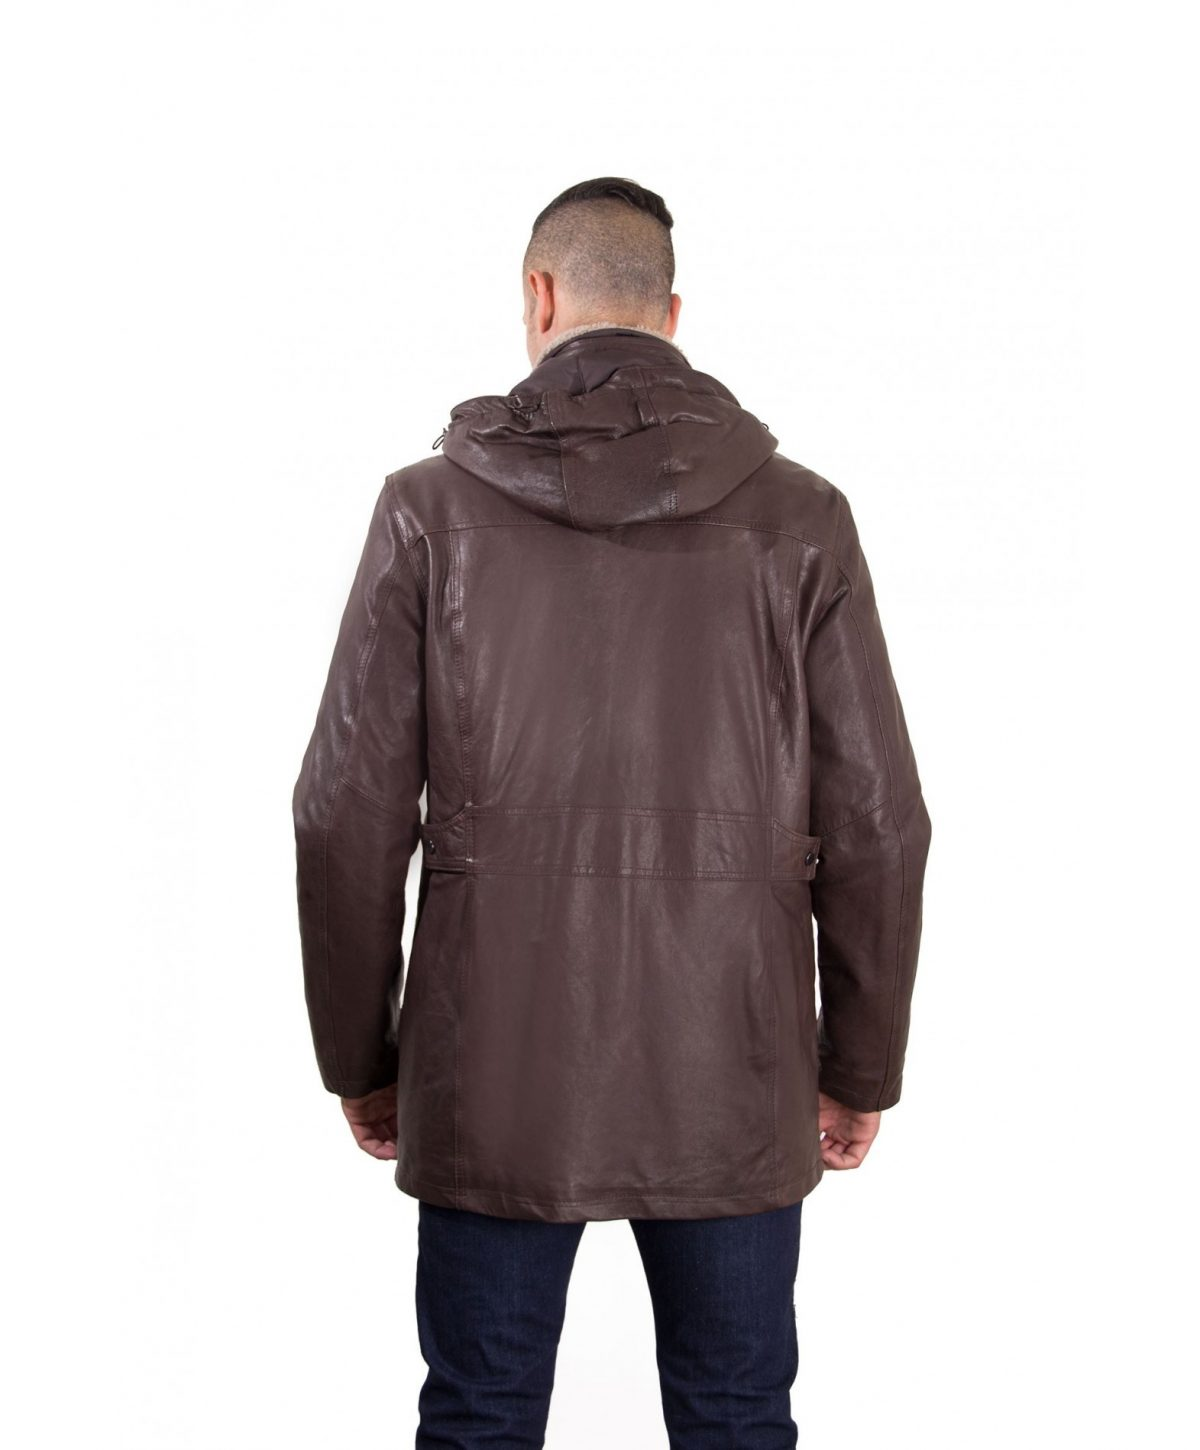 men-s-long-leather-coat-genuine-soft-leather-5-pockets-detachable-hood-buttons-and-zip-closing-dark-brown-color-mod-vittorio (2)